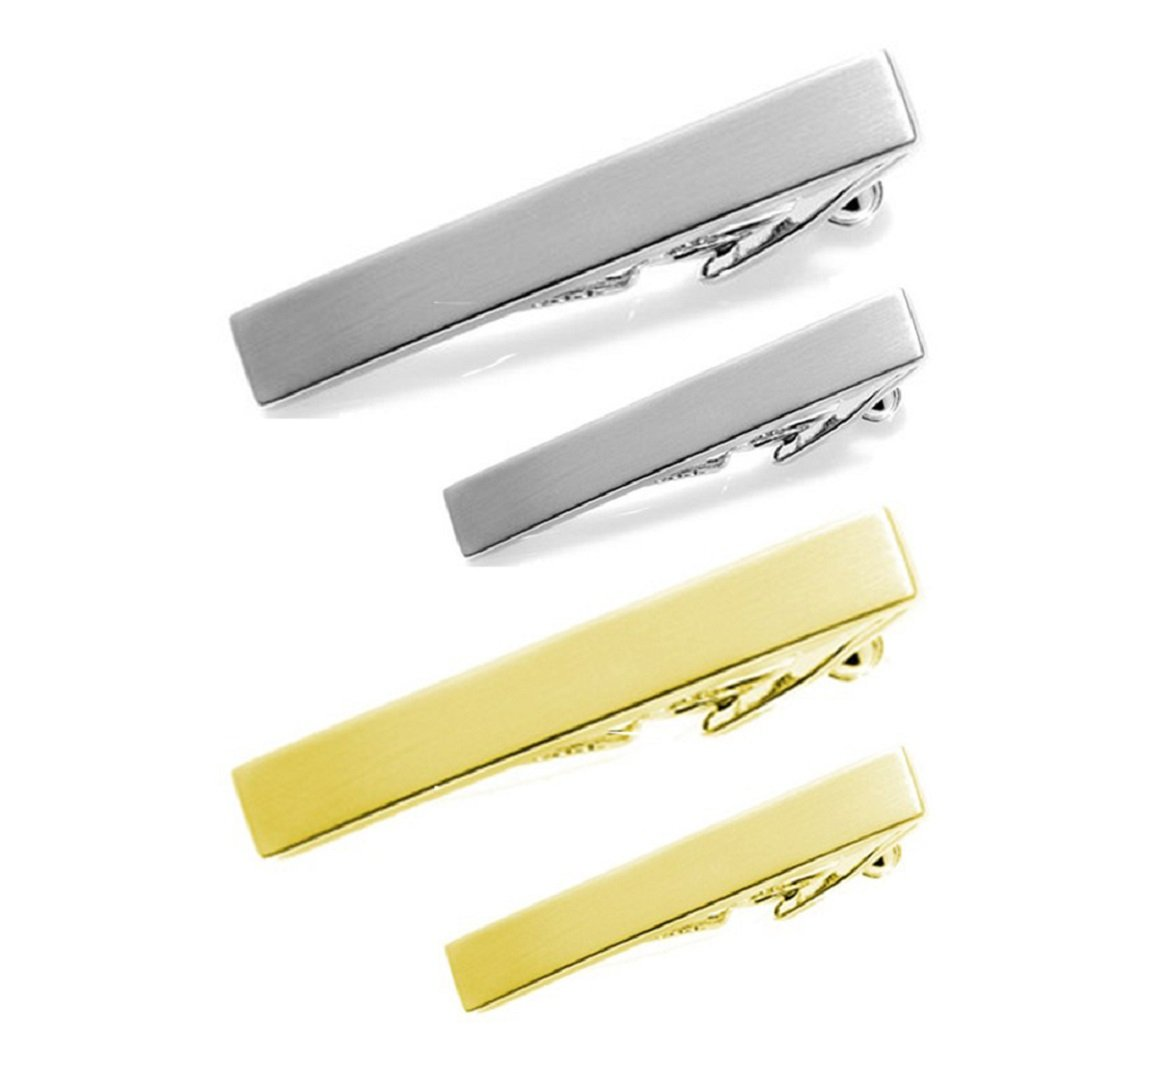 SKATECO Tie Clip Bar Set of 4 in Two Sizes, Regular Ties and Skinny Ties. 2 inch and 1.5 inch in Gold and Silver. Business Professional Fashion.